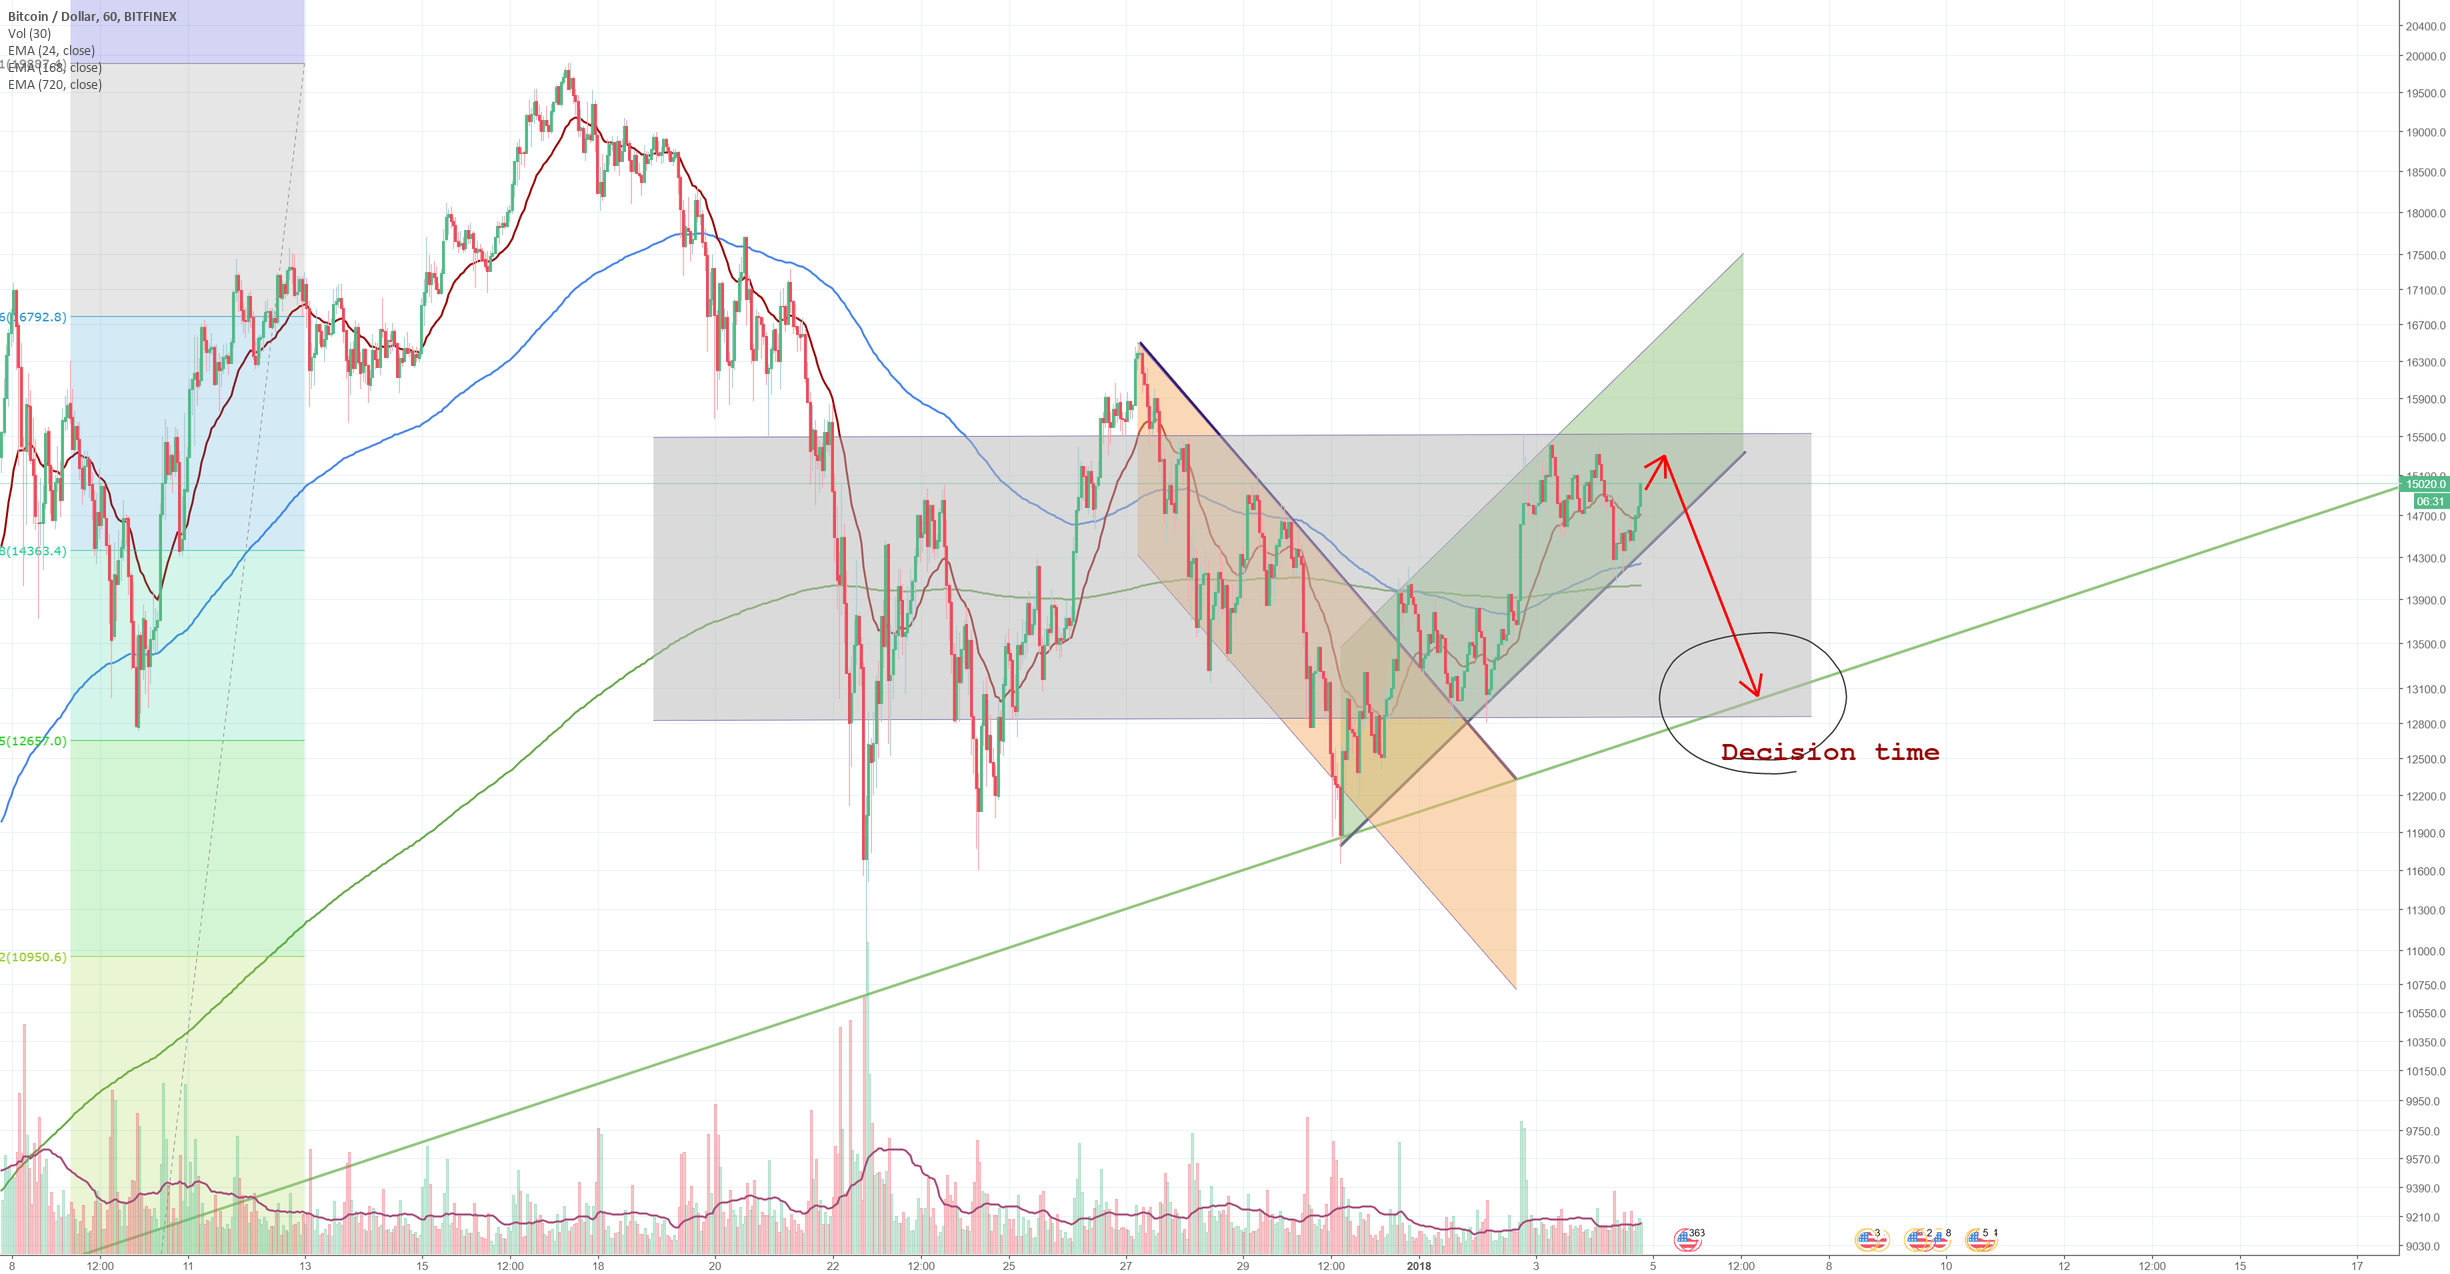 BTCUSD looking to break down (or out?) correct range